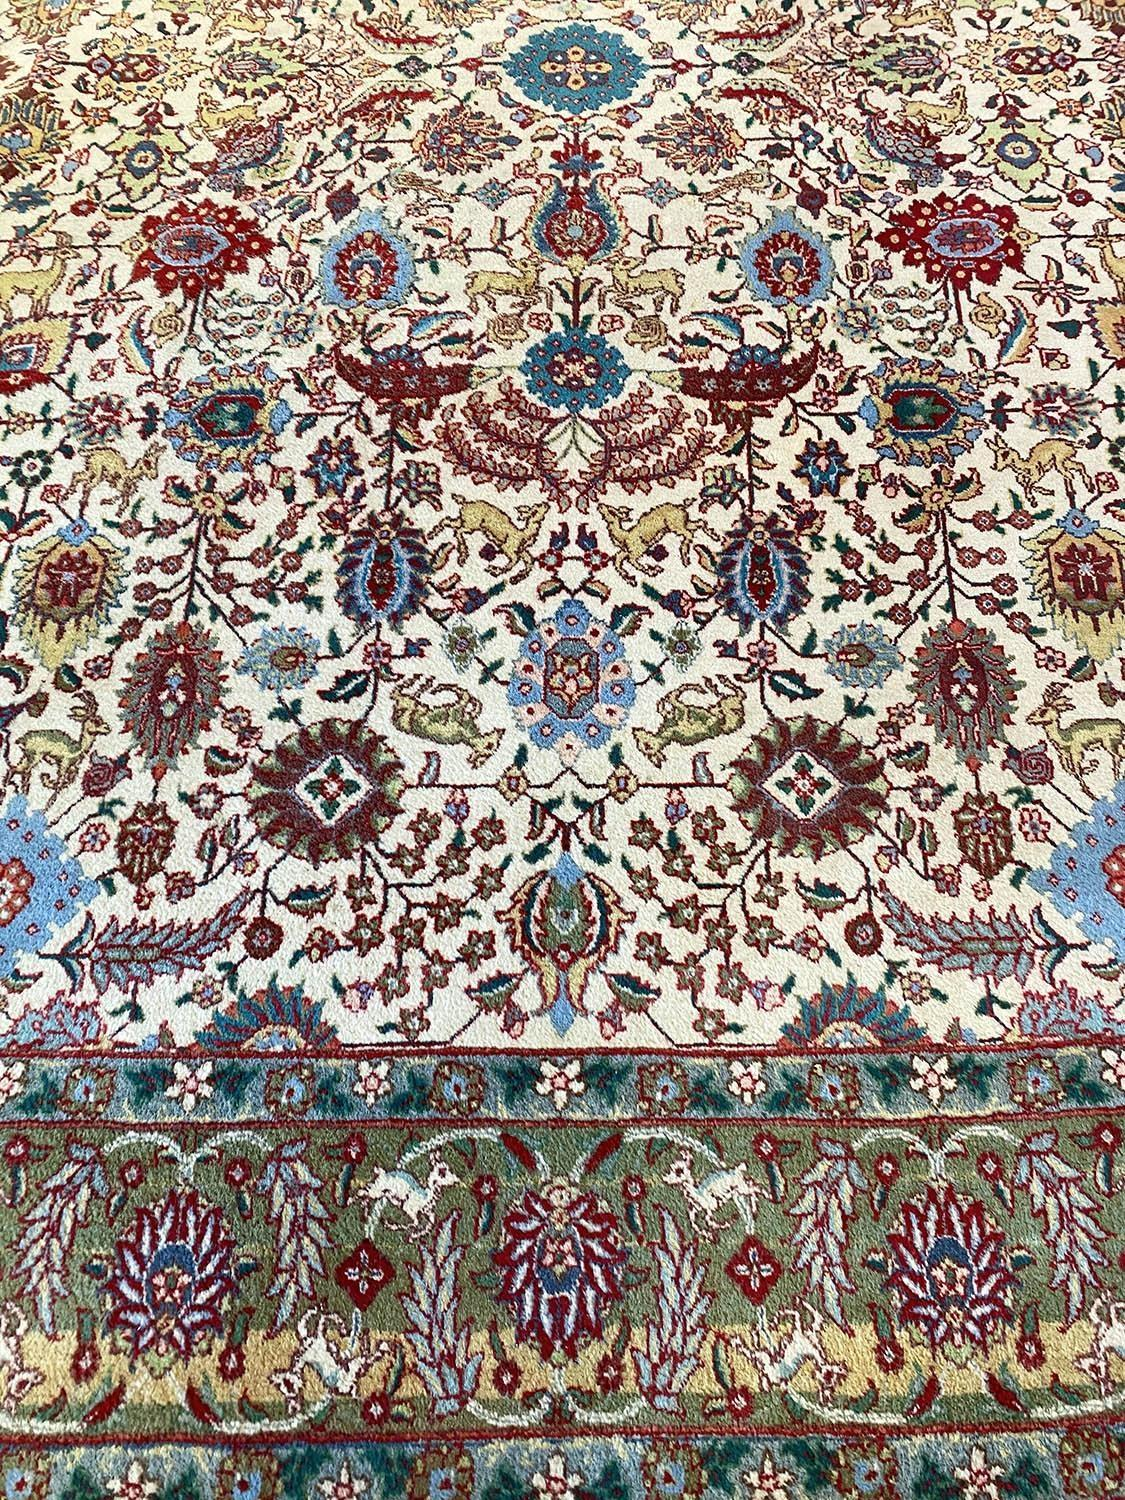 FINE PERSIAN TABRIZ CARPET, 387cm x 288cm, all over palmette and vine design with deer motifs within - Image 5 of 5